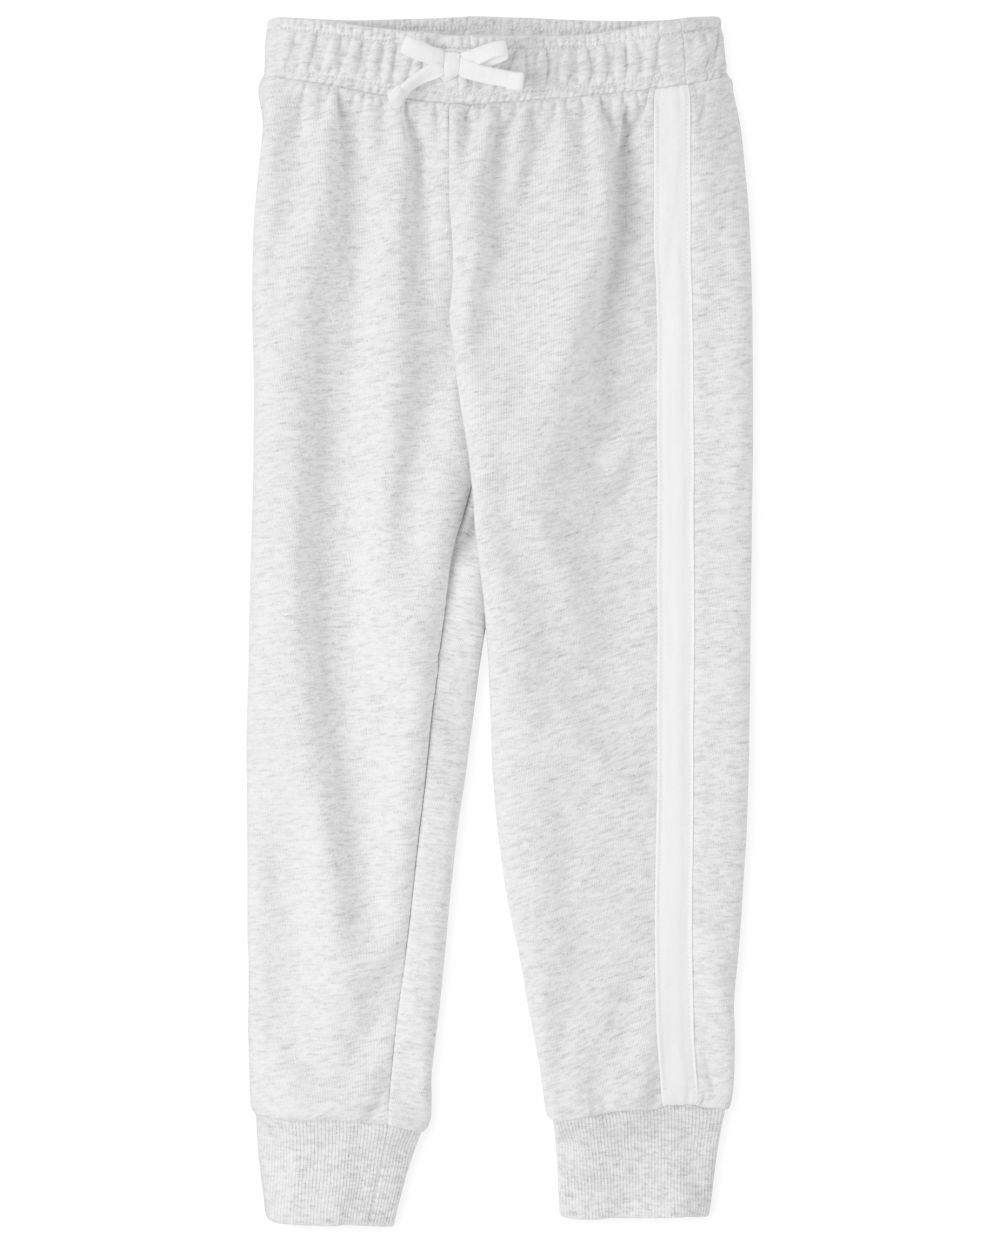 Girls Active Side Stripe French Terry Jogger Pants